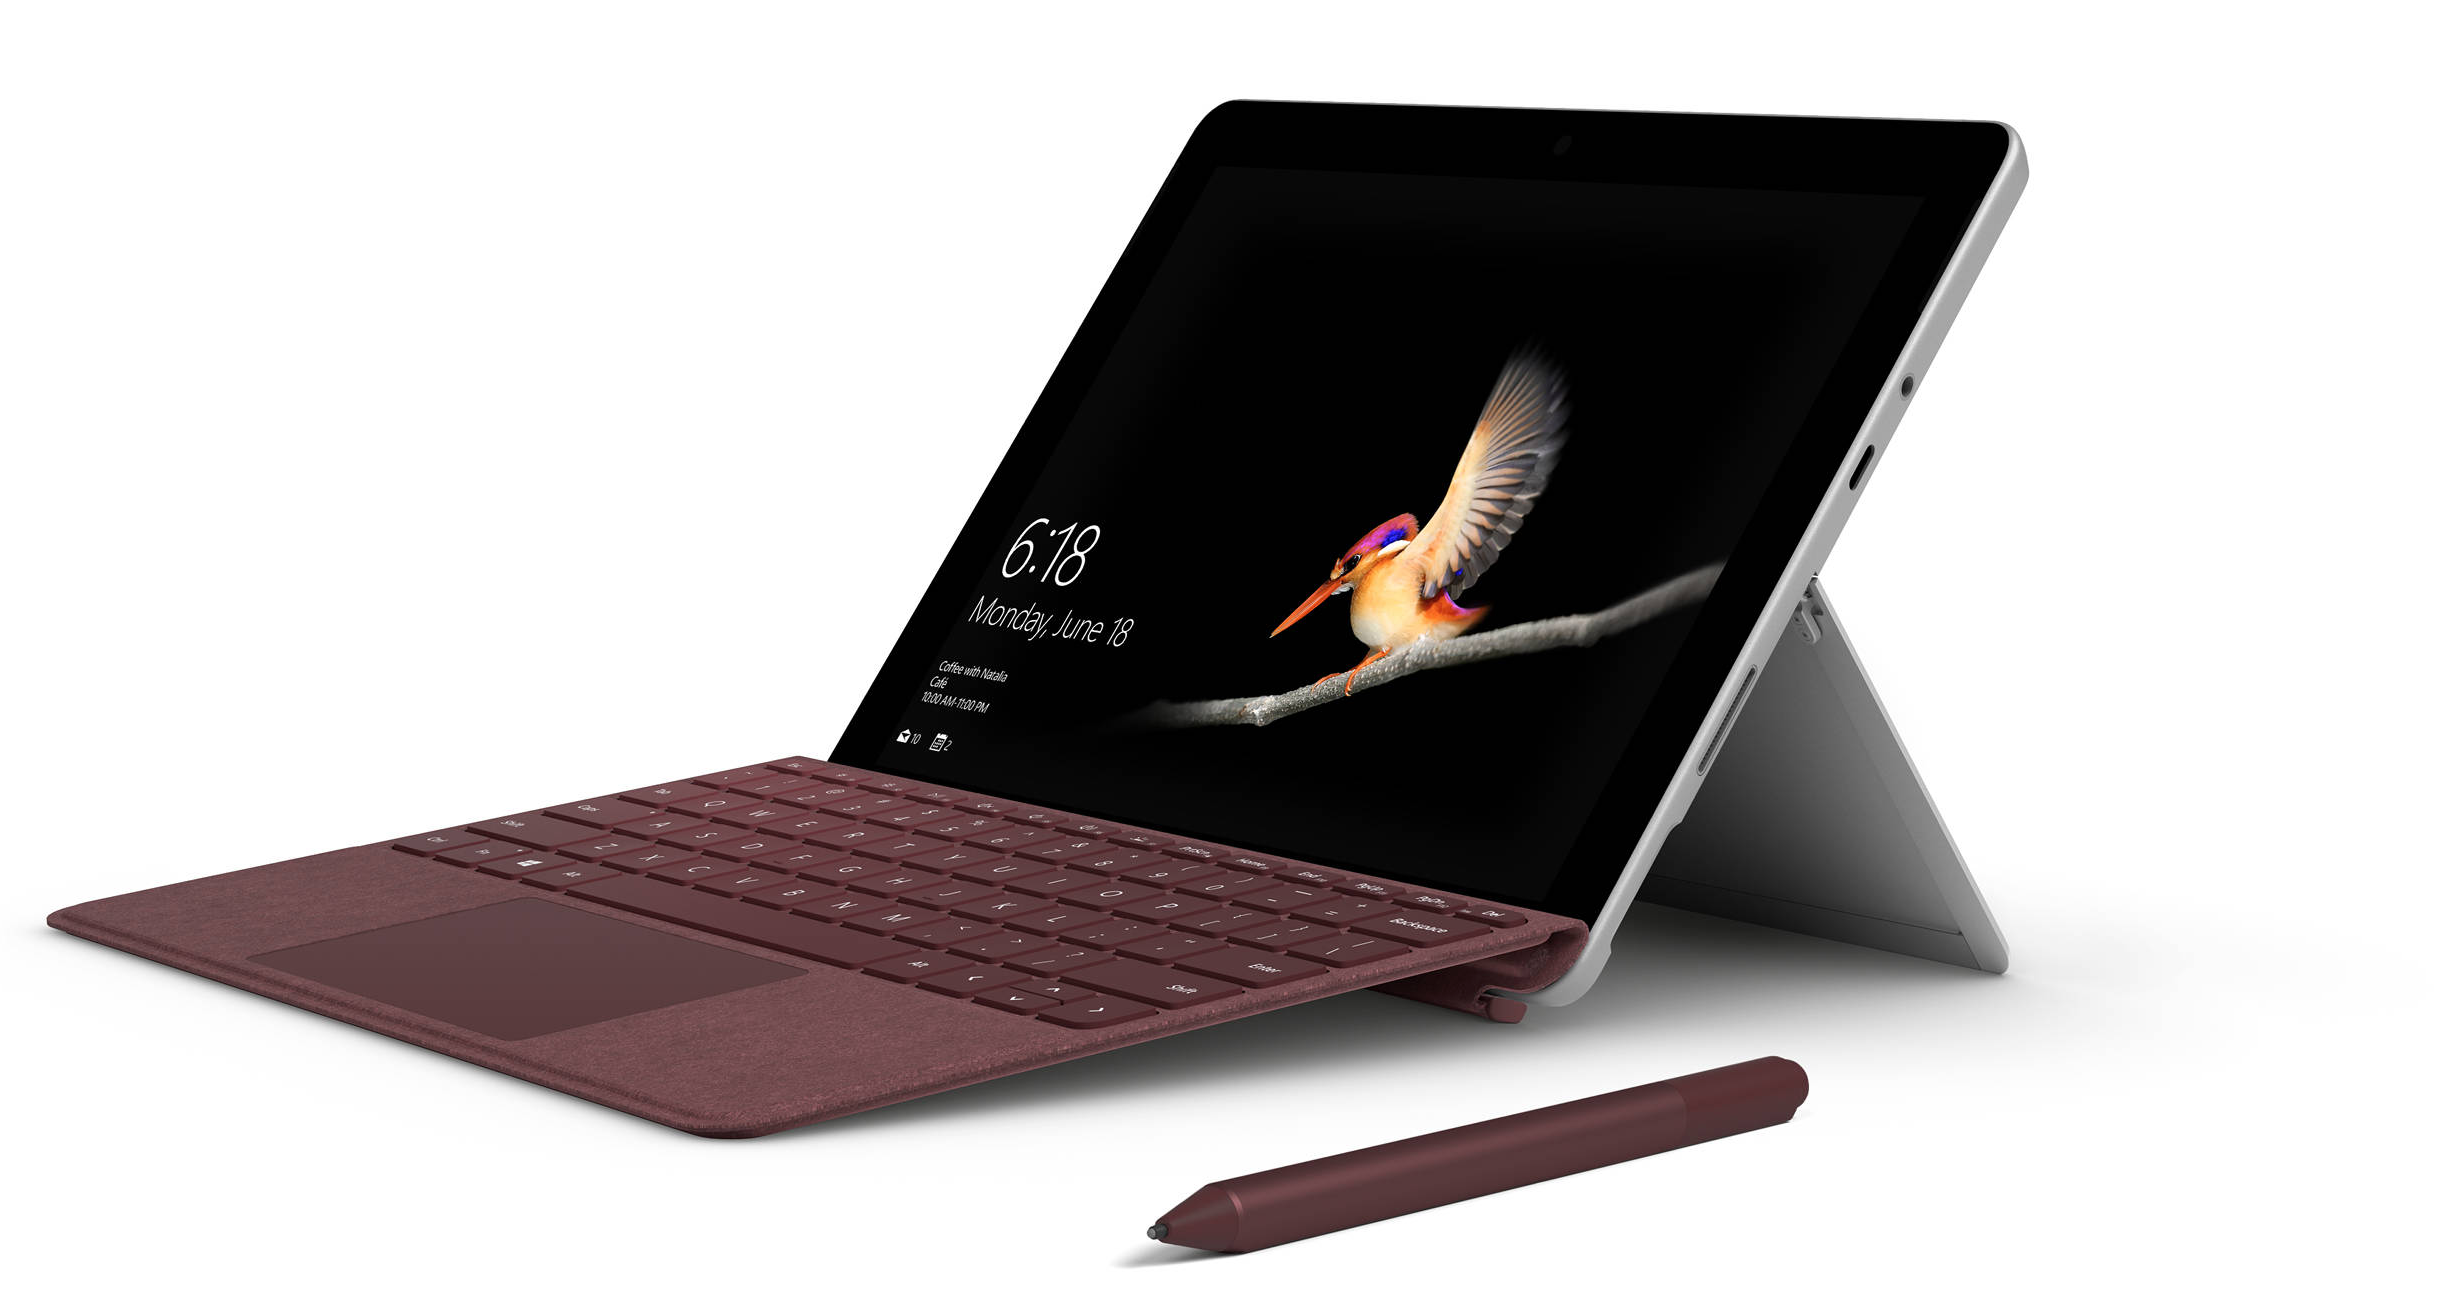 The latest news on Surface